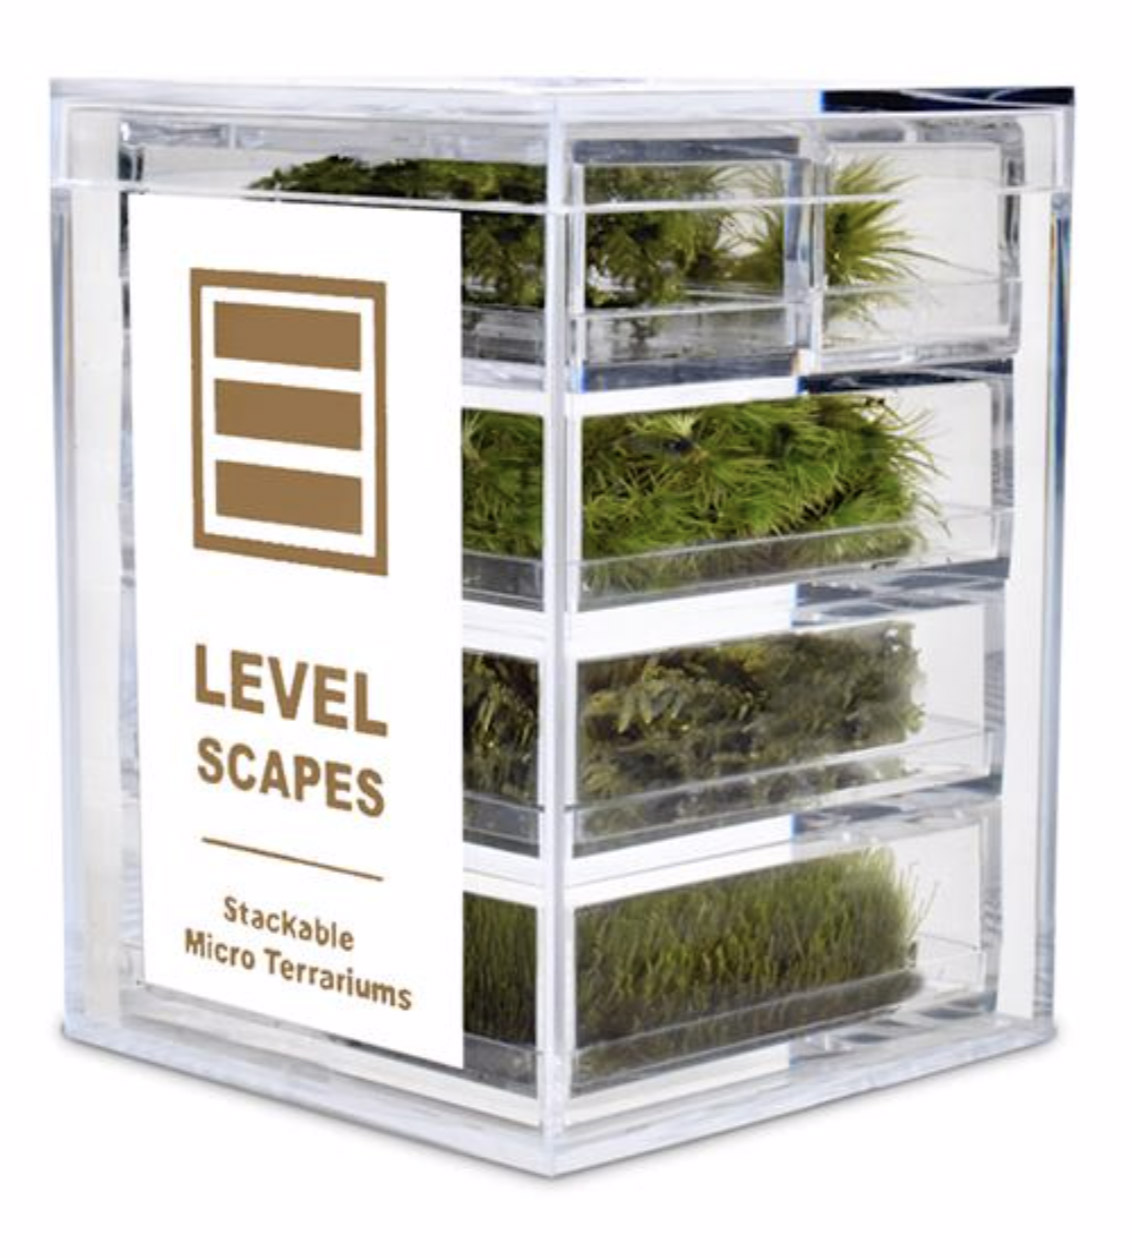 levelscapes2